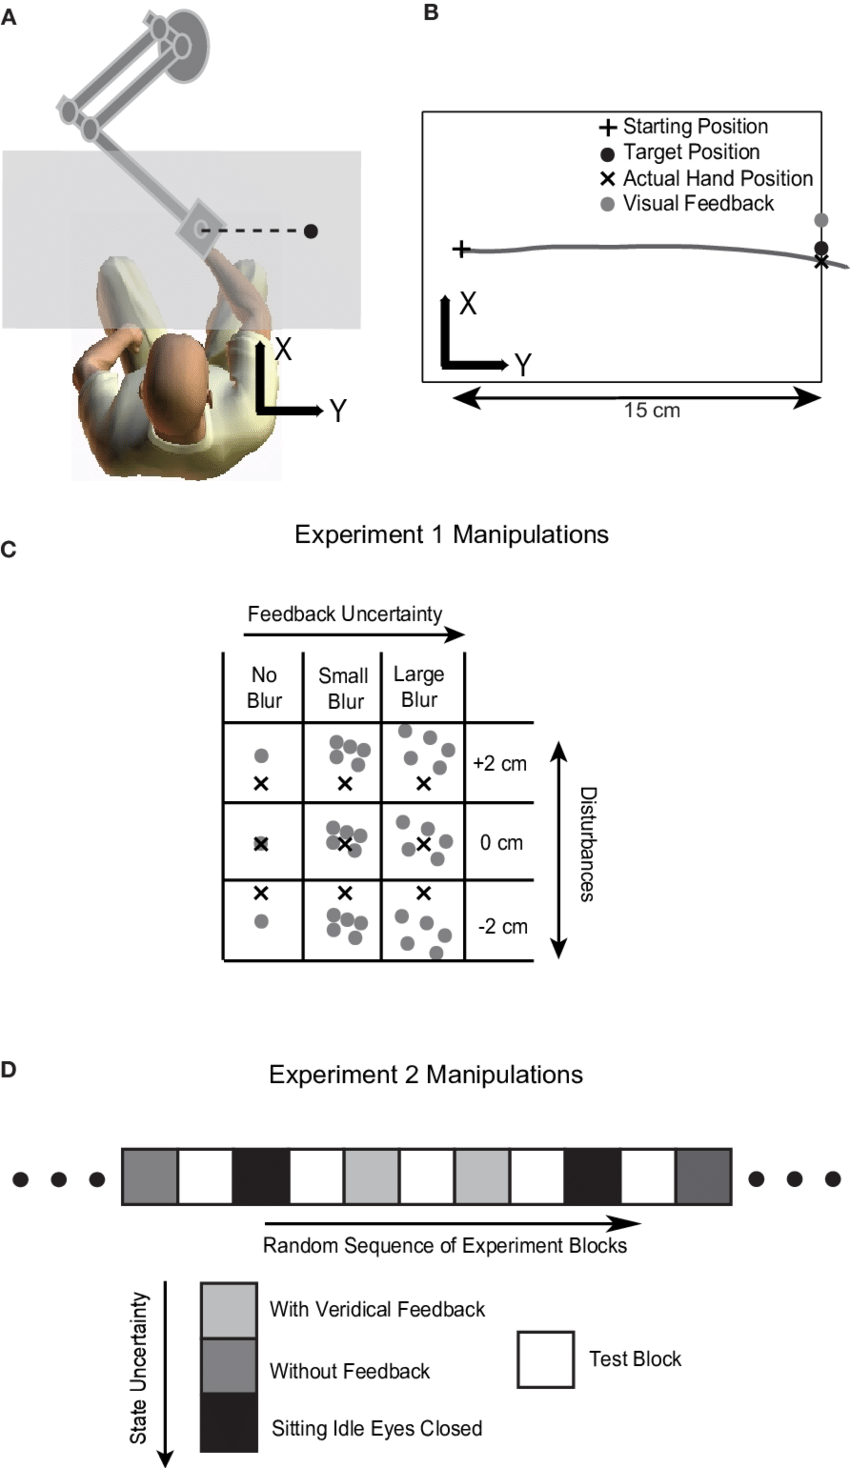 llustration of the experimental setup and procedures. (A